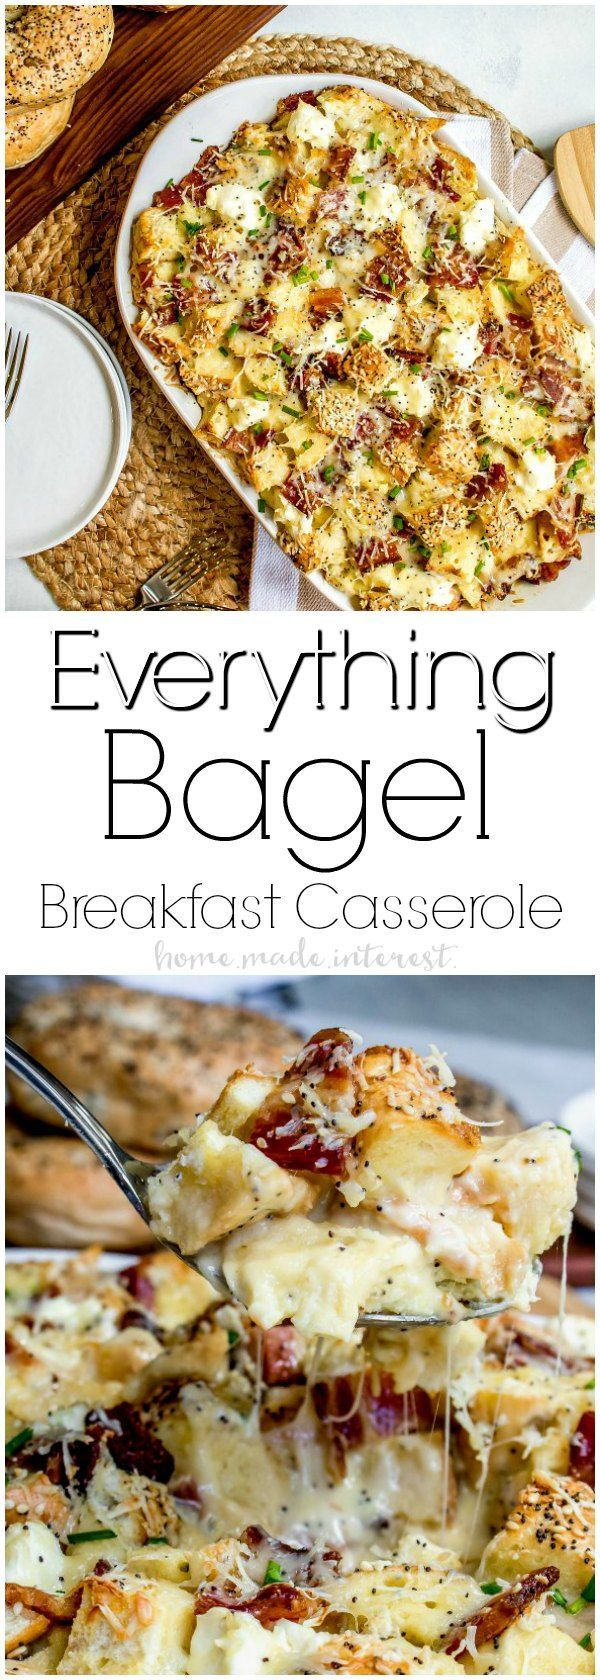 Everything Bagel Make Ahead Breakfast Casserole. I love make ahead casseroles!